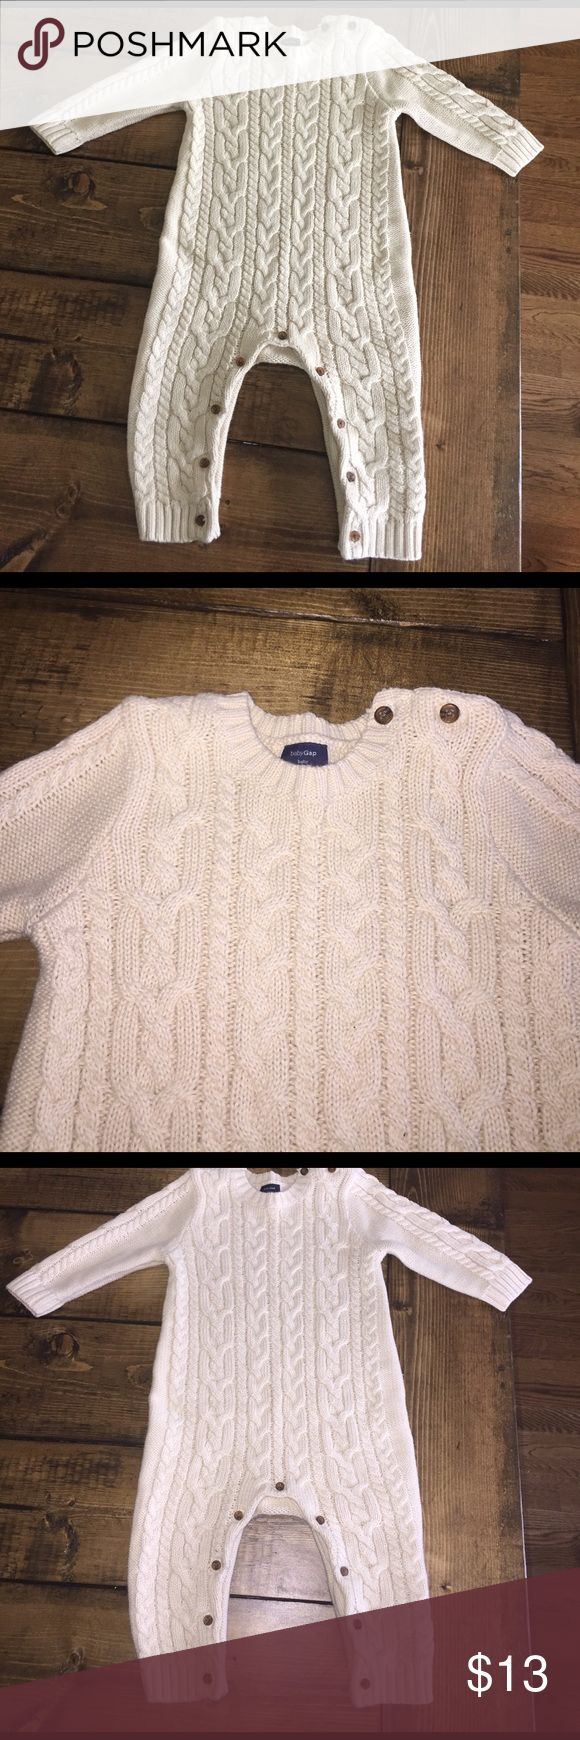 Baby Gap Cable Knit Cream One Piece Outfit Baby Gap Long Sleeved Cable Knit Cream One Piece Outfit GAP One Pieces Bodysuits